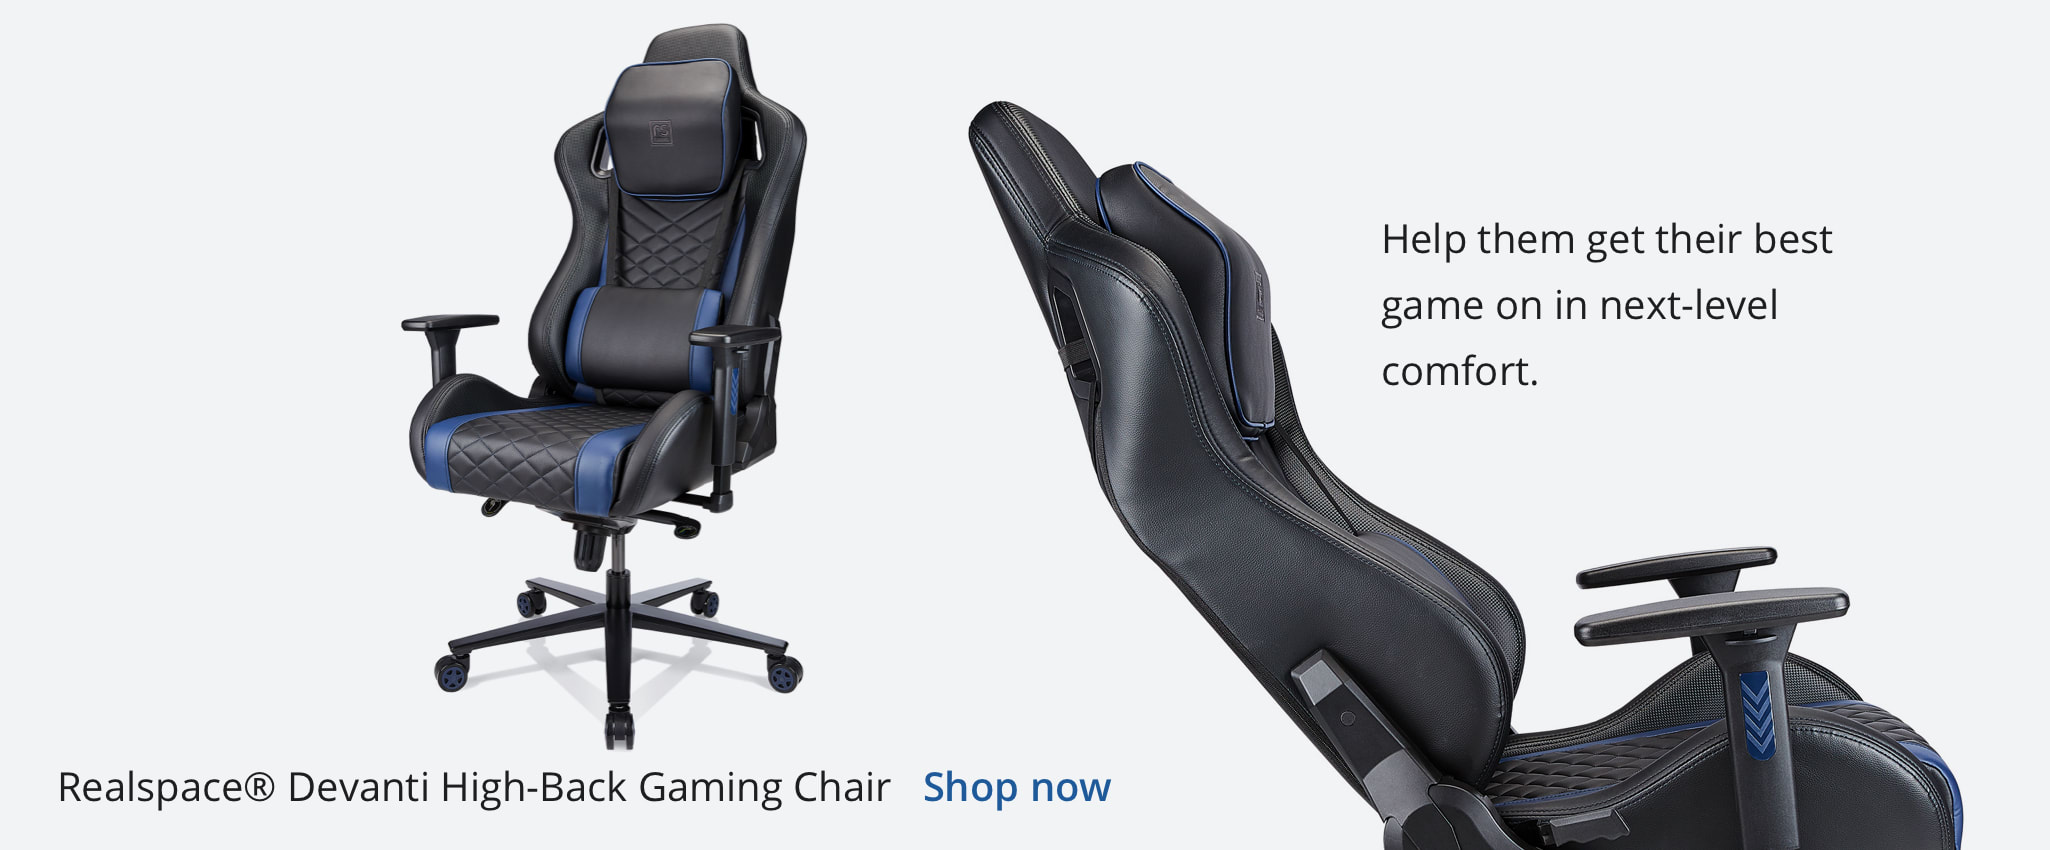 4120_www_gift-guides_2040x850_gaming_chair